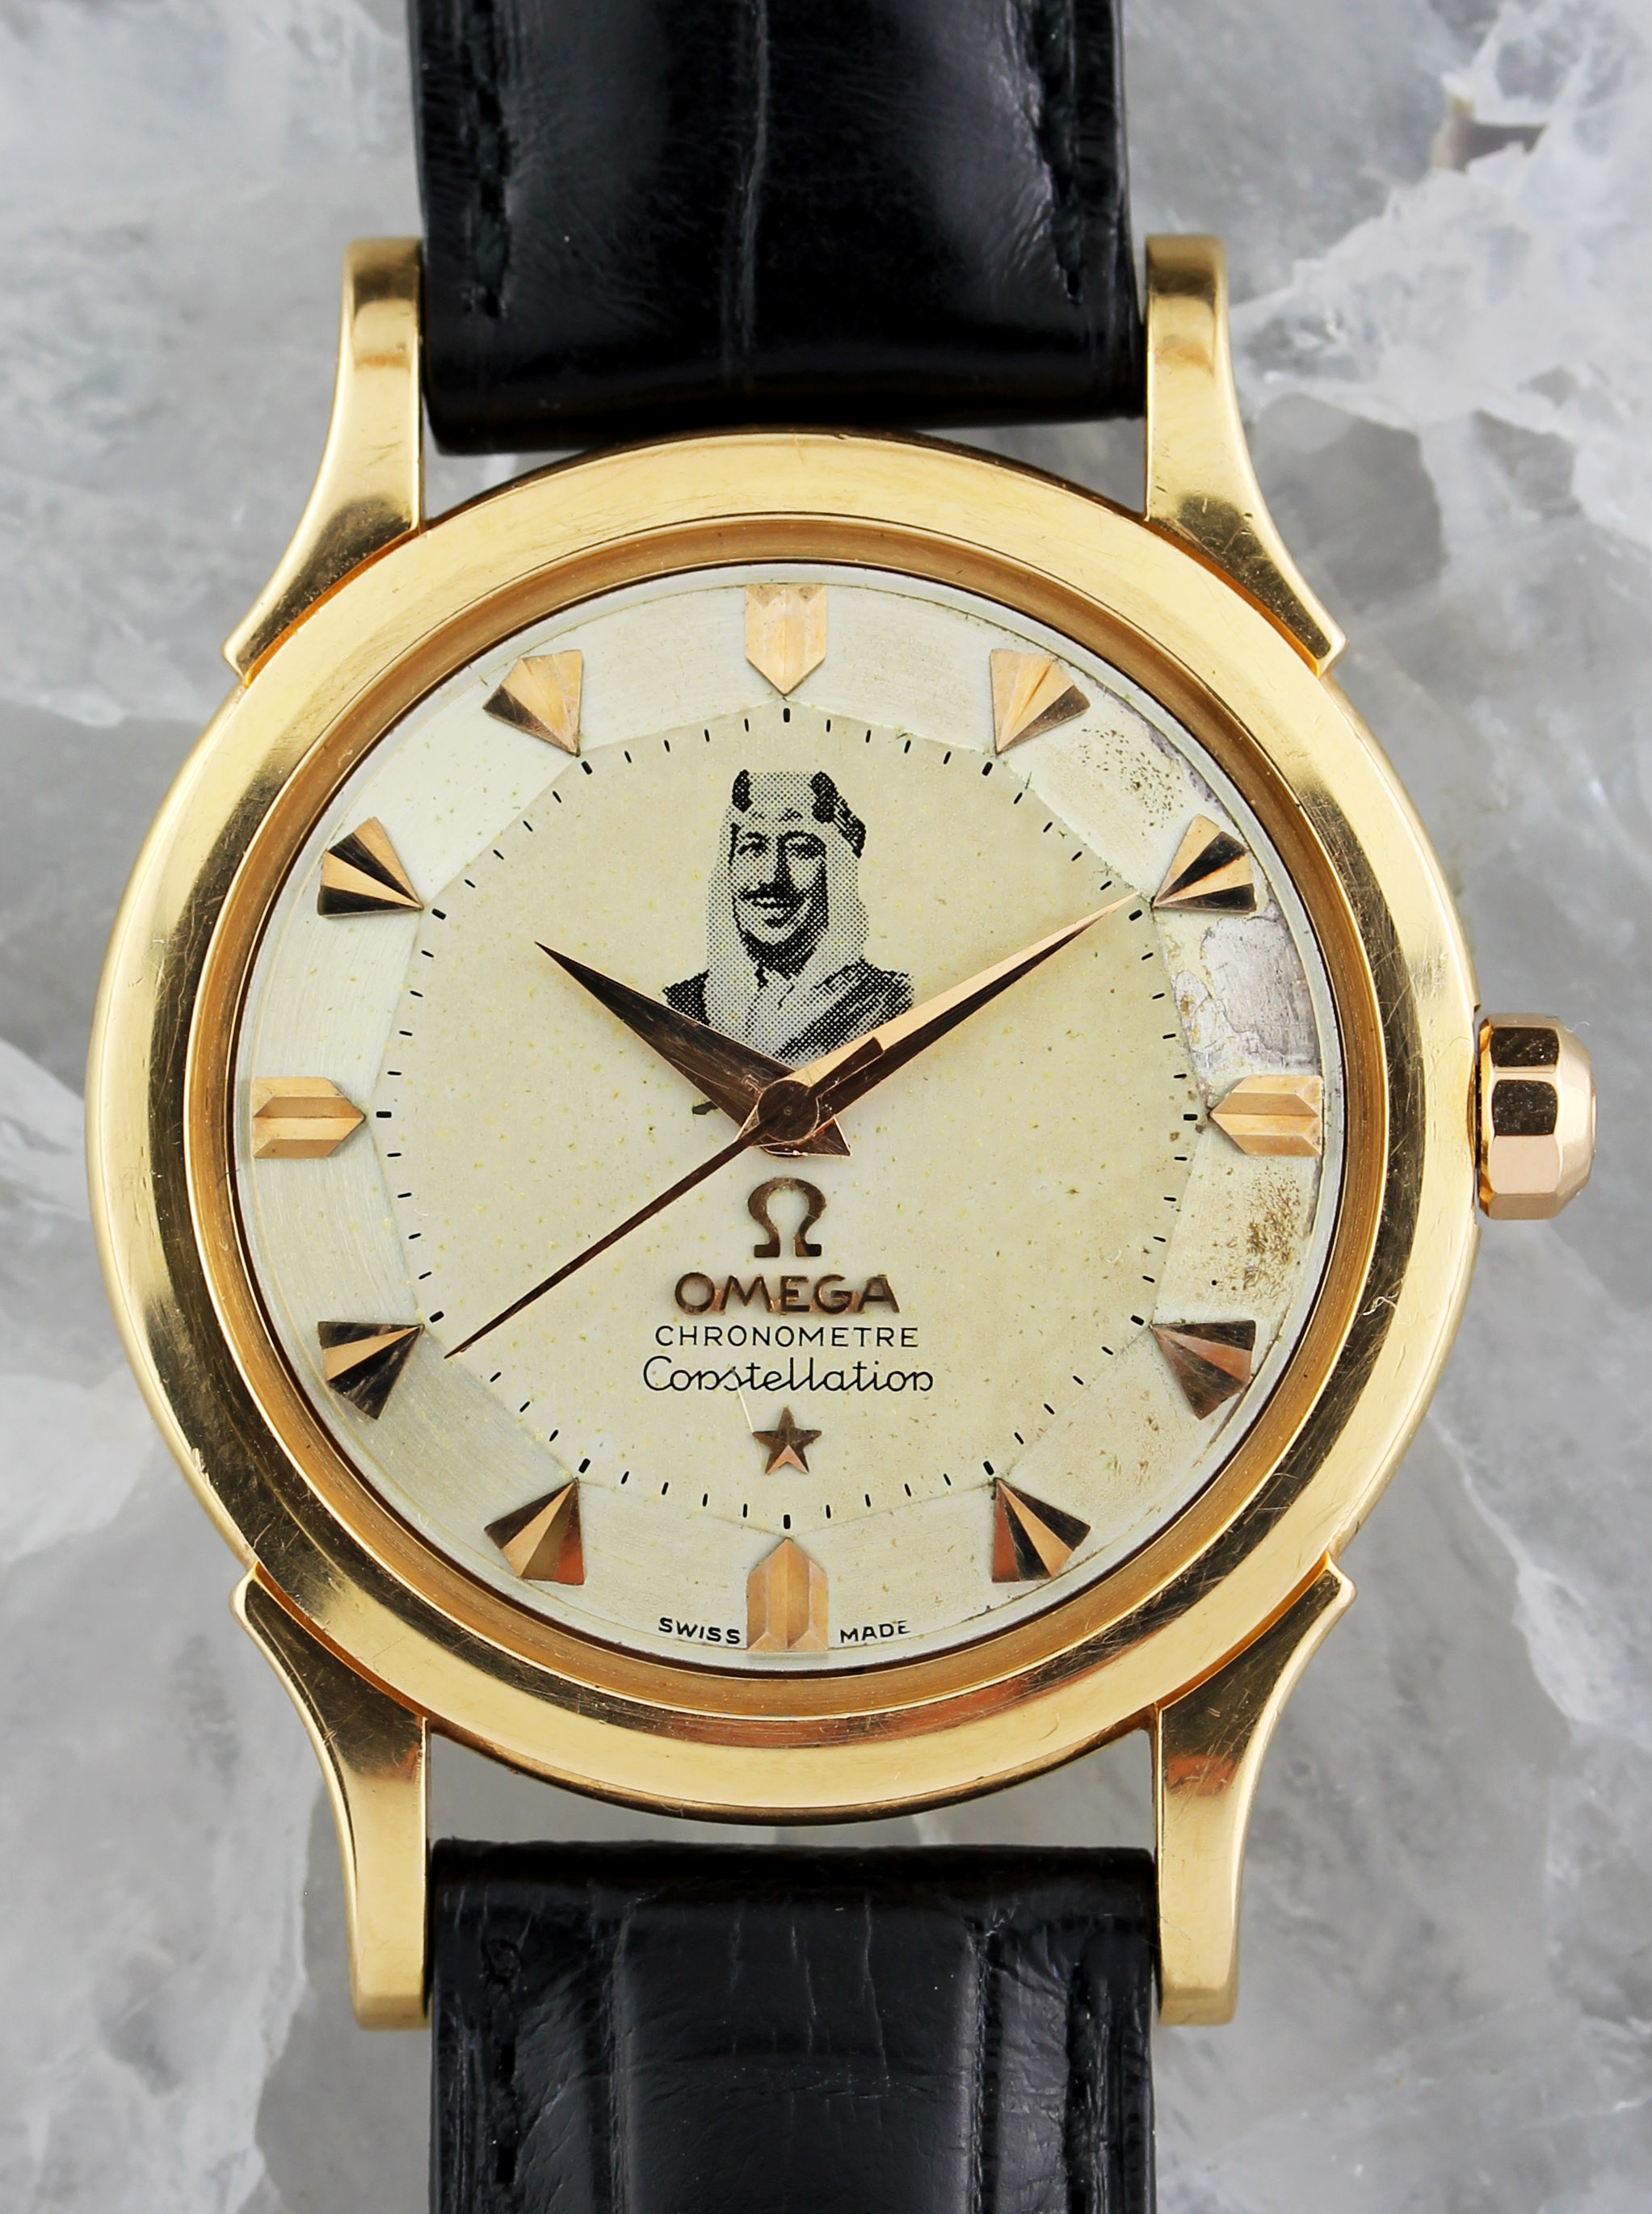 Extremely rare OMEGA Constellation with portrait of King Ibn Saud on the dial, ref 14381